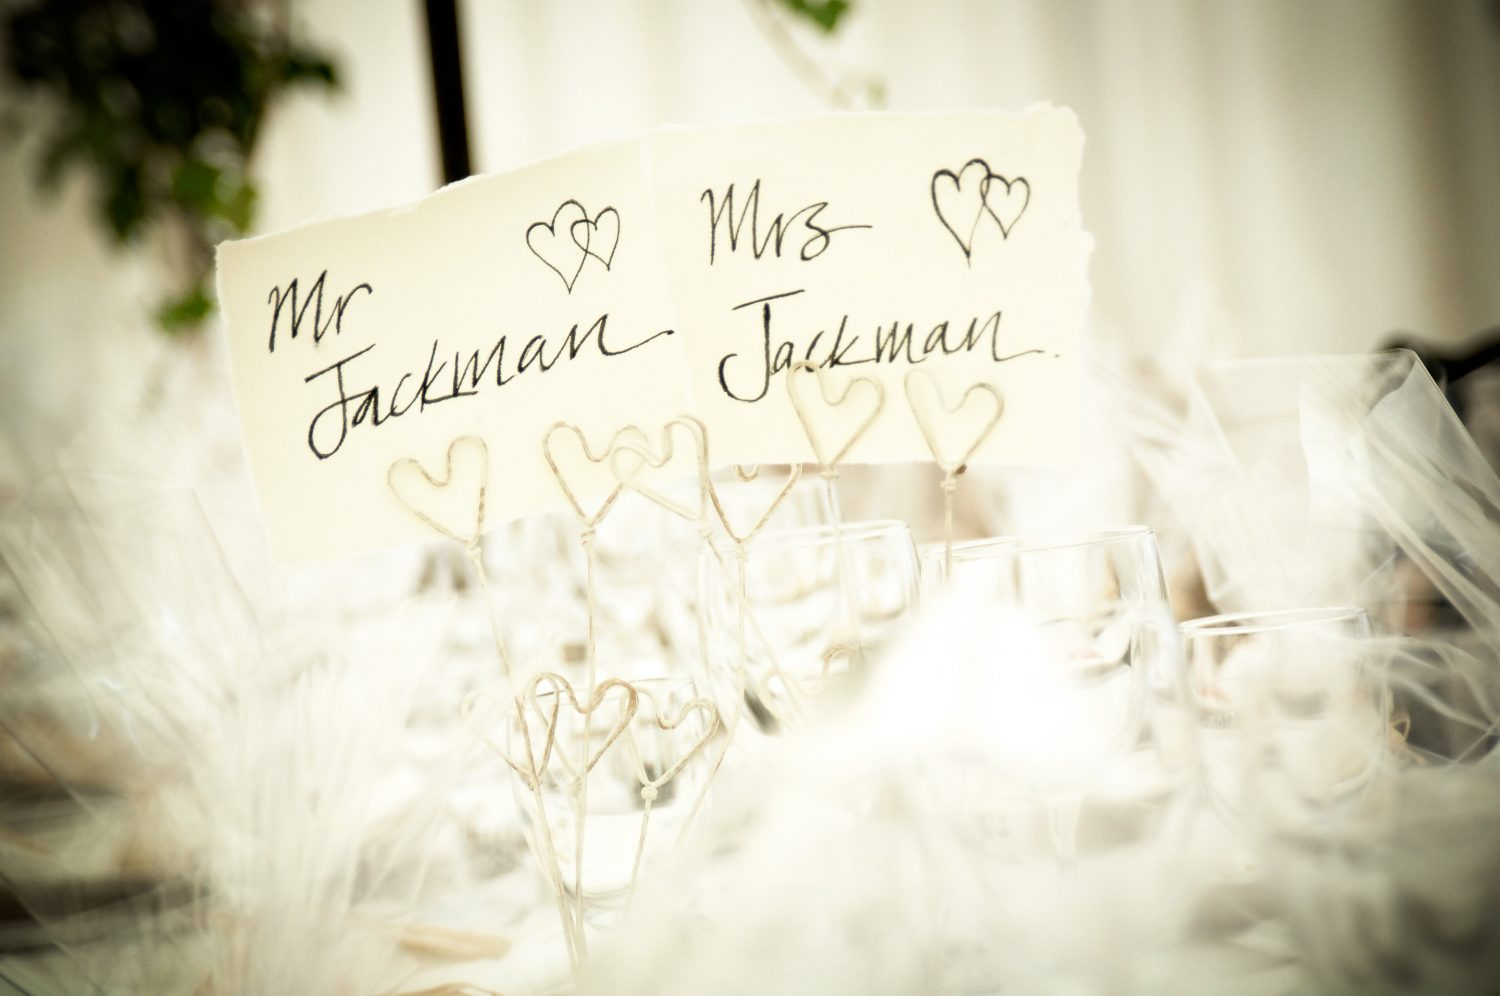 Handmade namecards at a marquee wedding